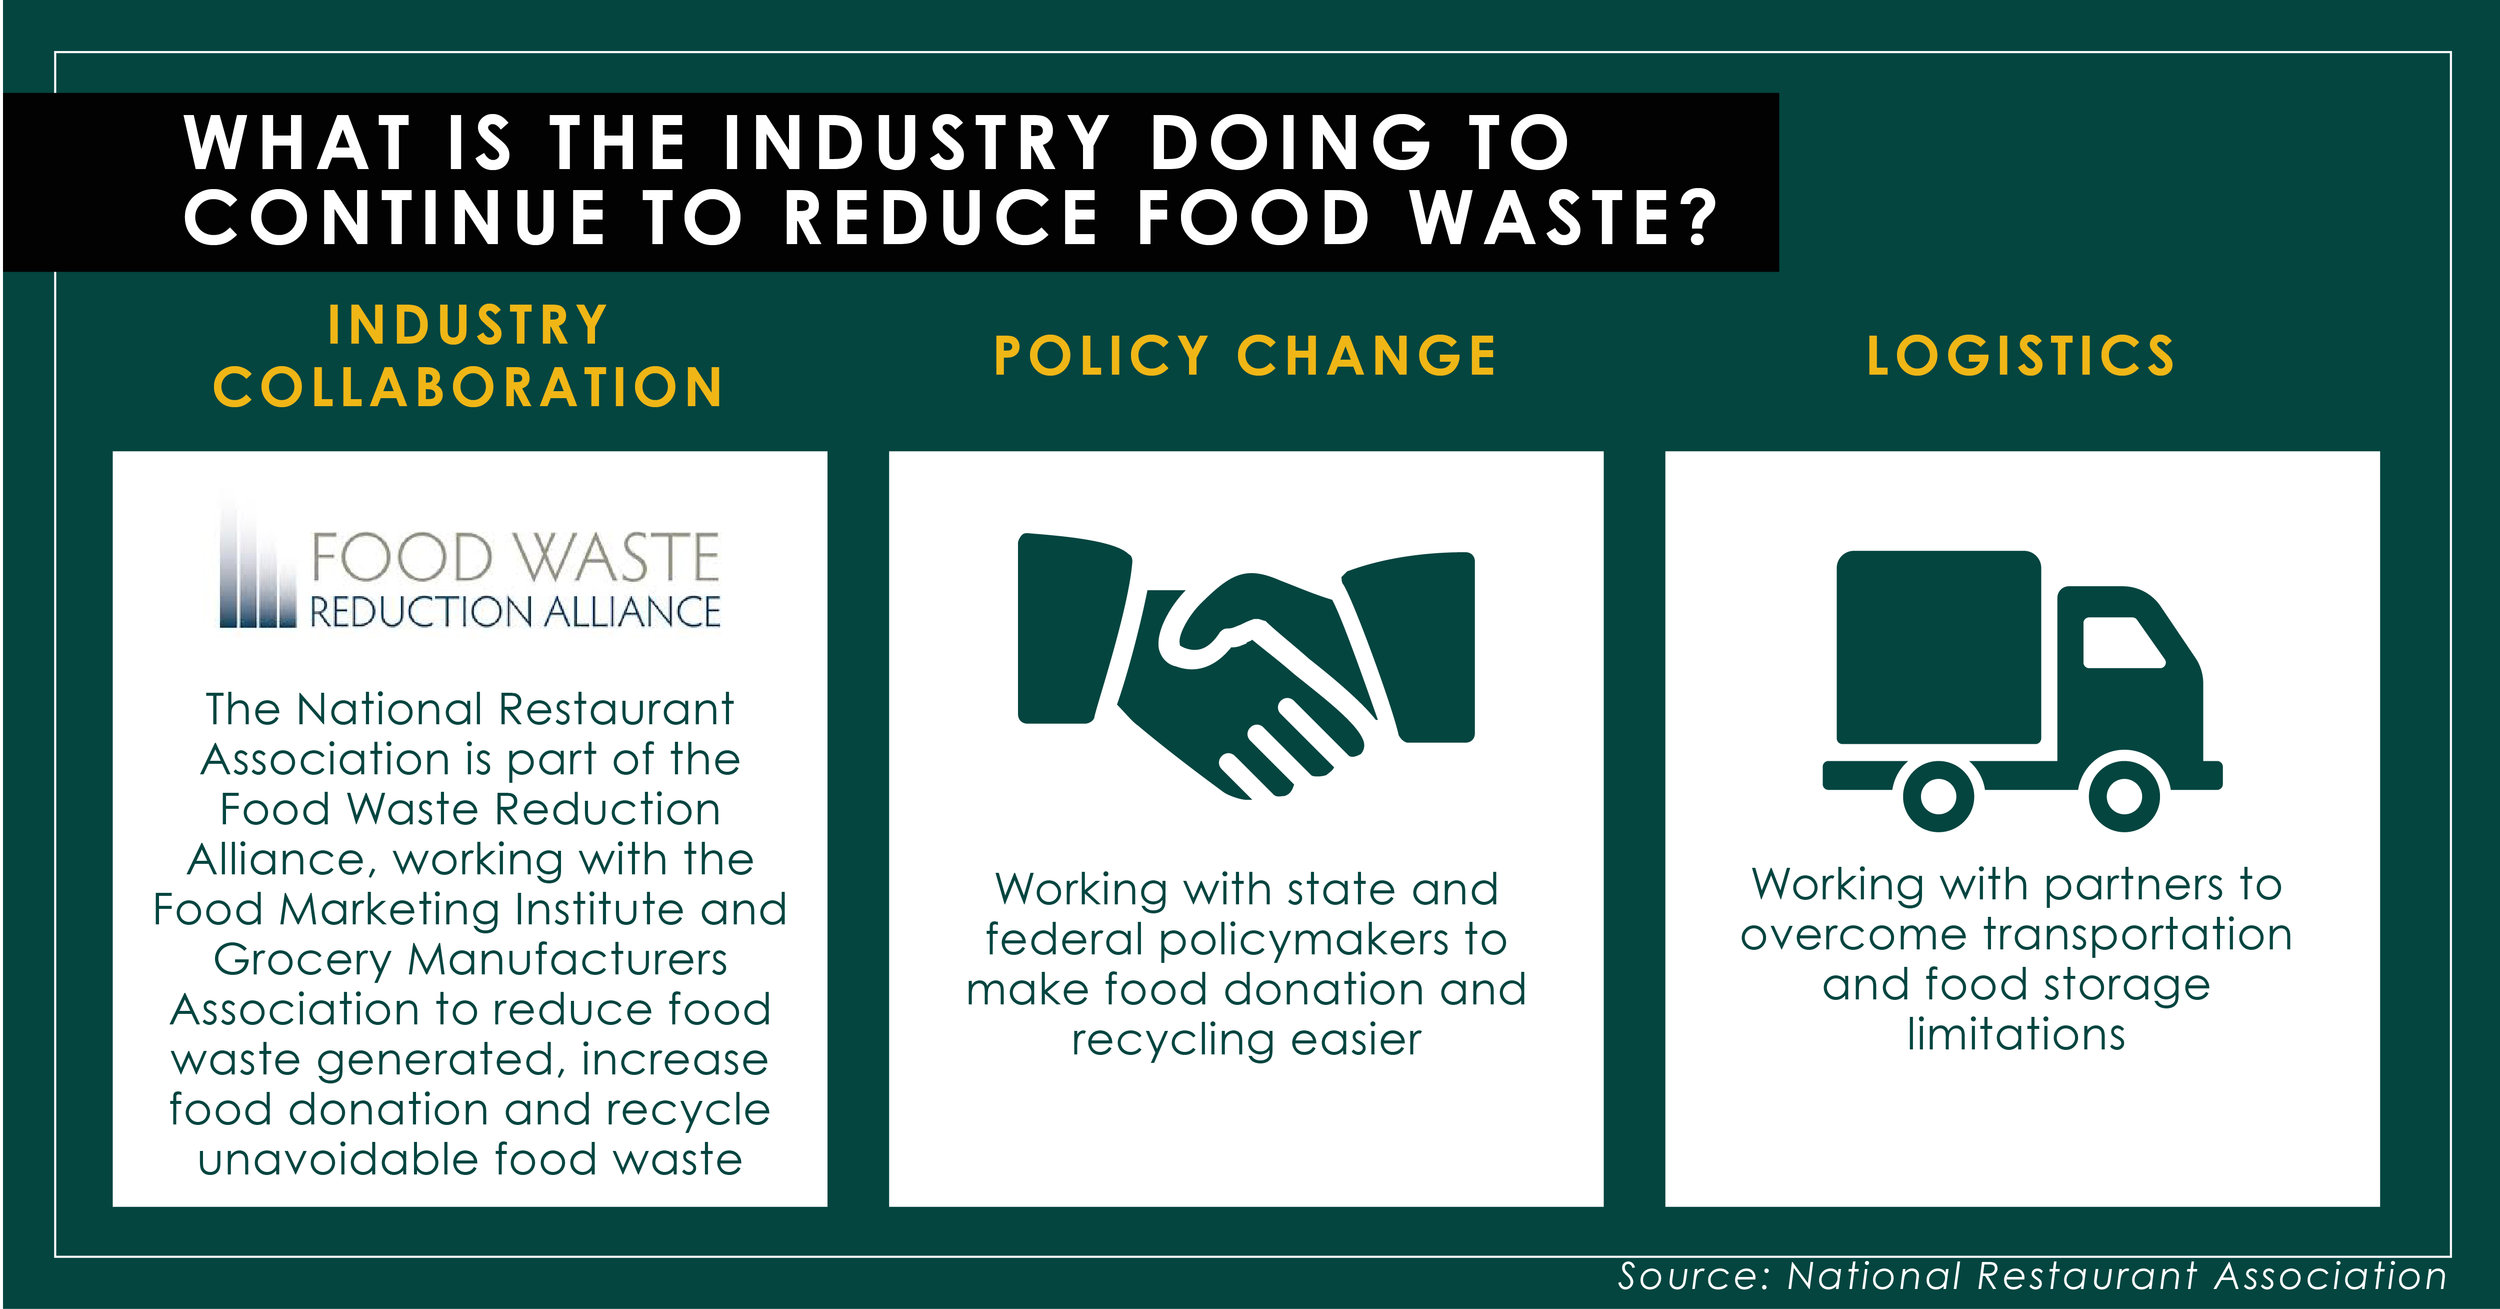 WHAT IS THE INDUSTRY DOING TO CONTINUE TO REDUCE FOOD WASTE-01.jpg